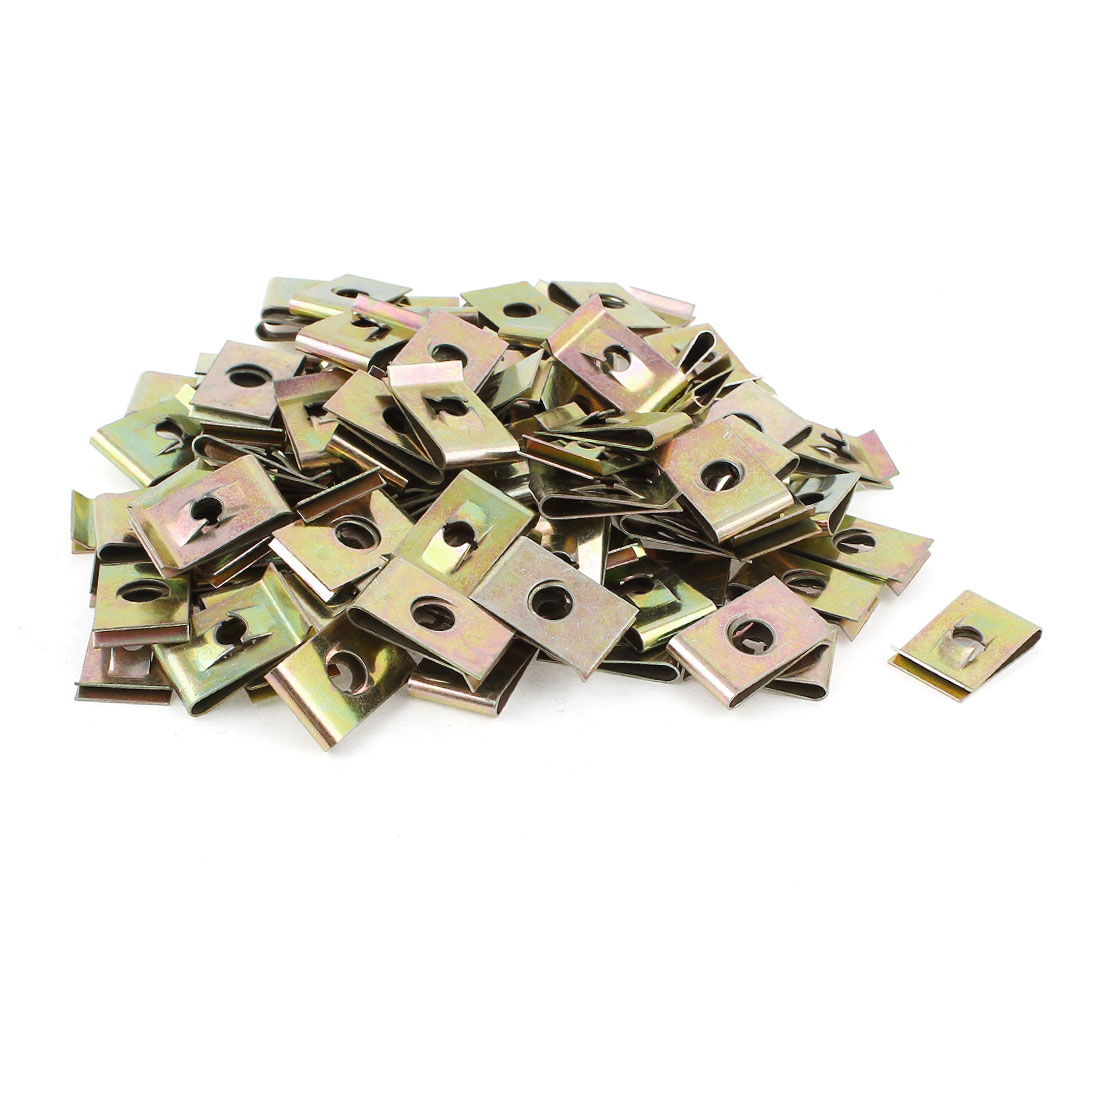 100 Pcs M7 7mm Metal U Nut Fairing Clip Speed Fastener Clamp